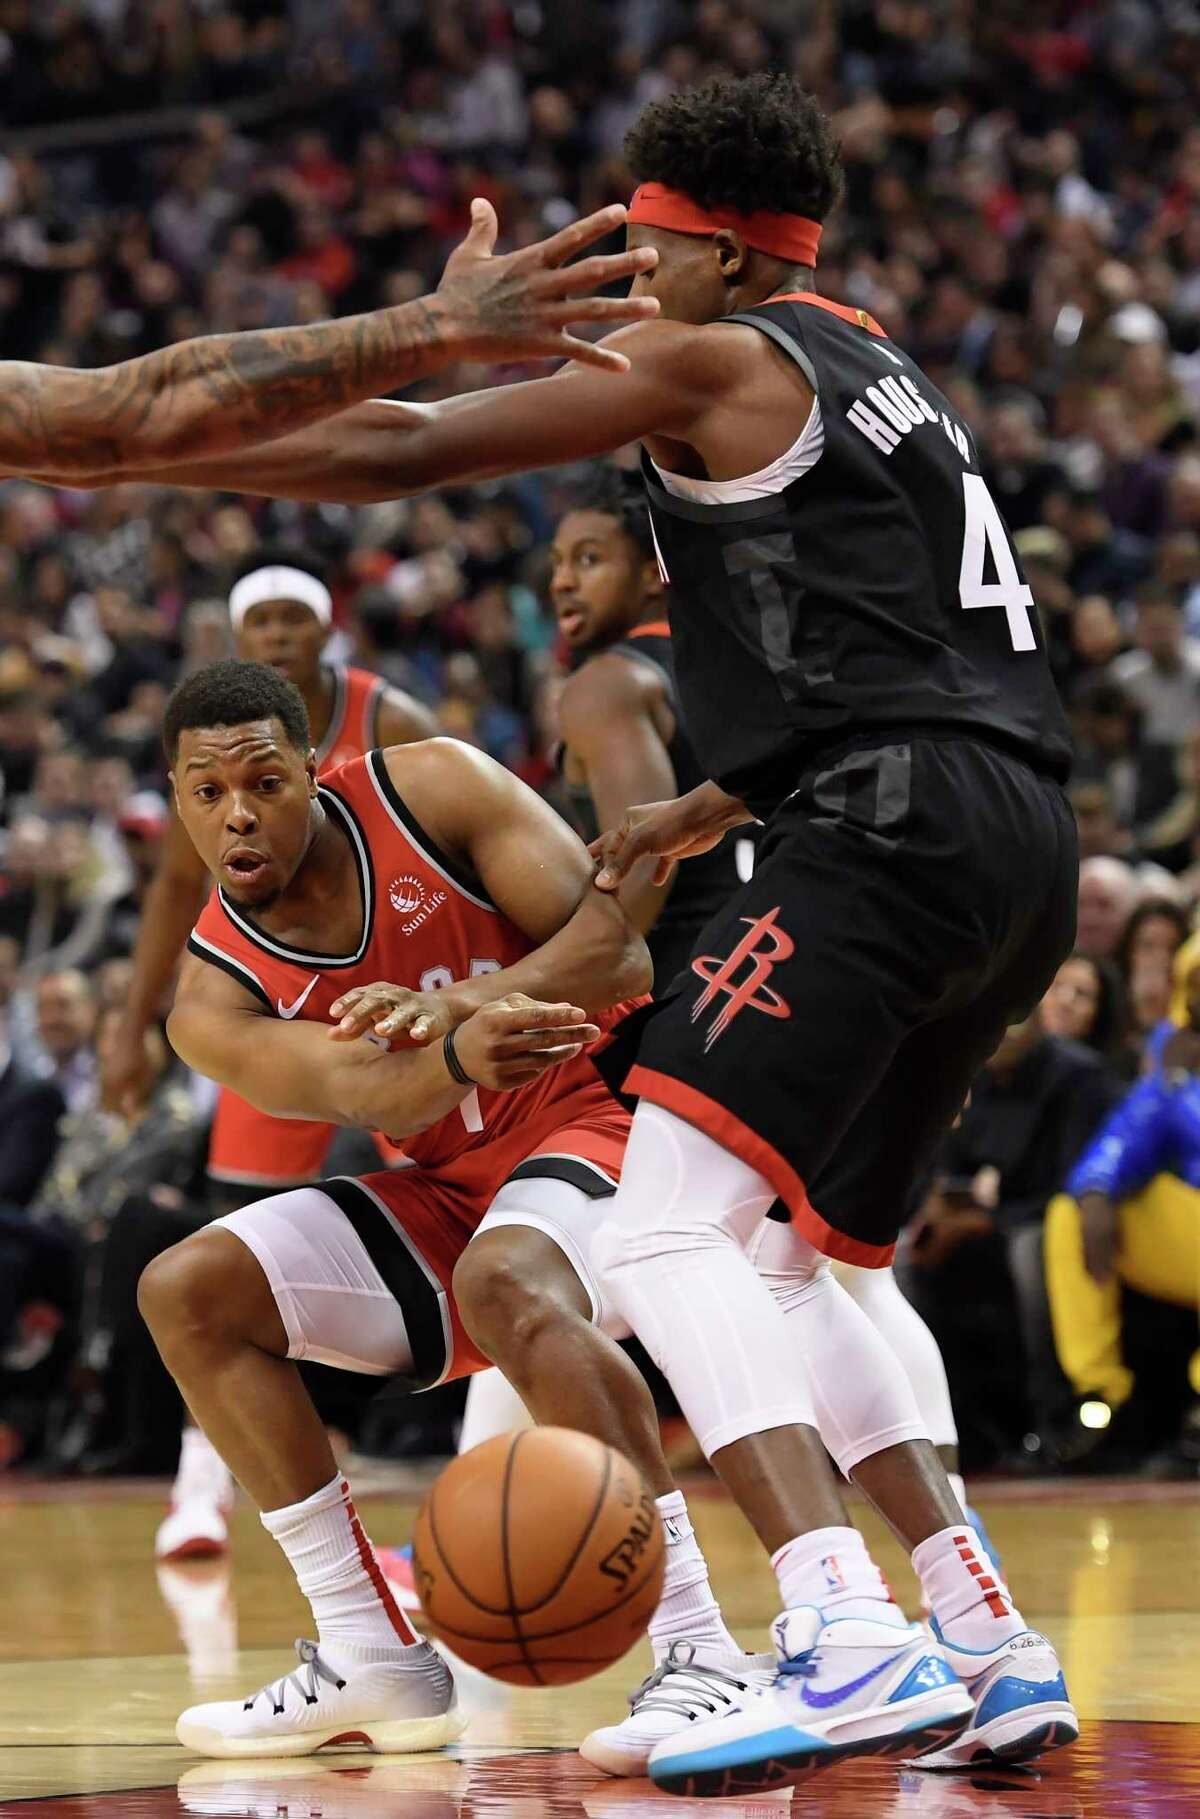 Toronto Raptors guard Kyle Lowry (7) passes the ball past Houston Rockets forward Danuel House Jr. (4) during first half NBA action in Toronto on Thursday, Dec.5, 2019. (Nathan Denette/The Canadian Press via AP)